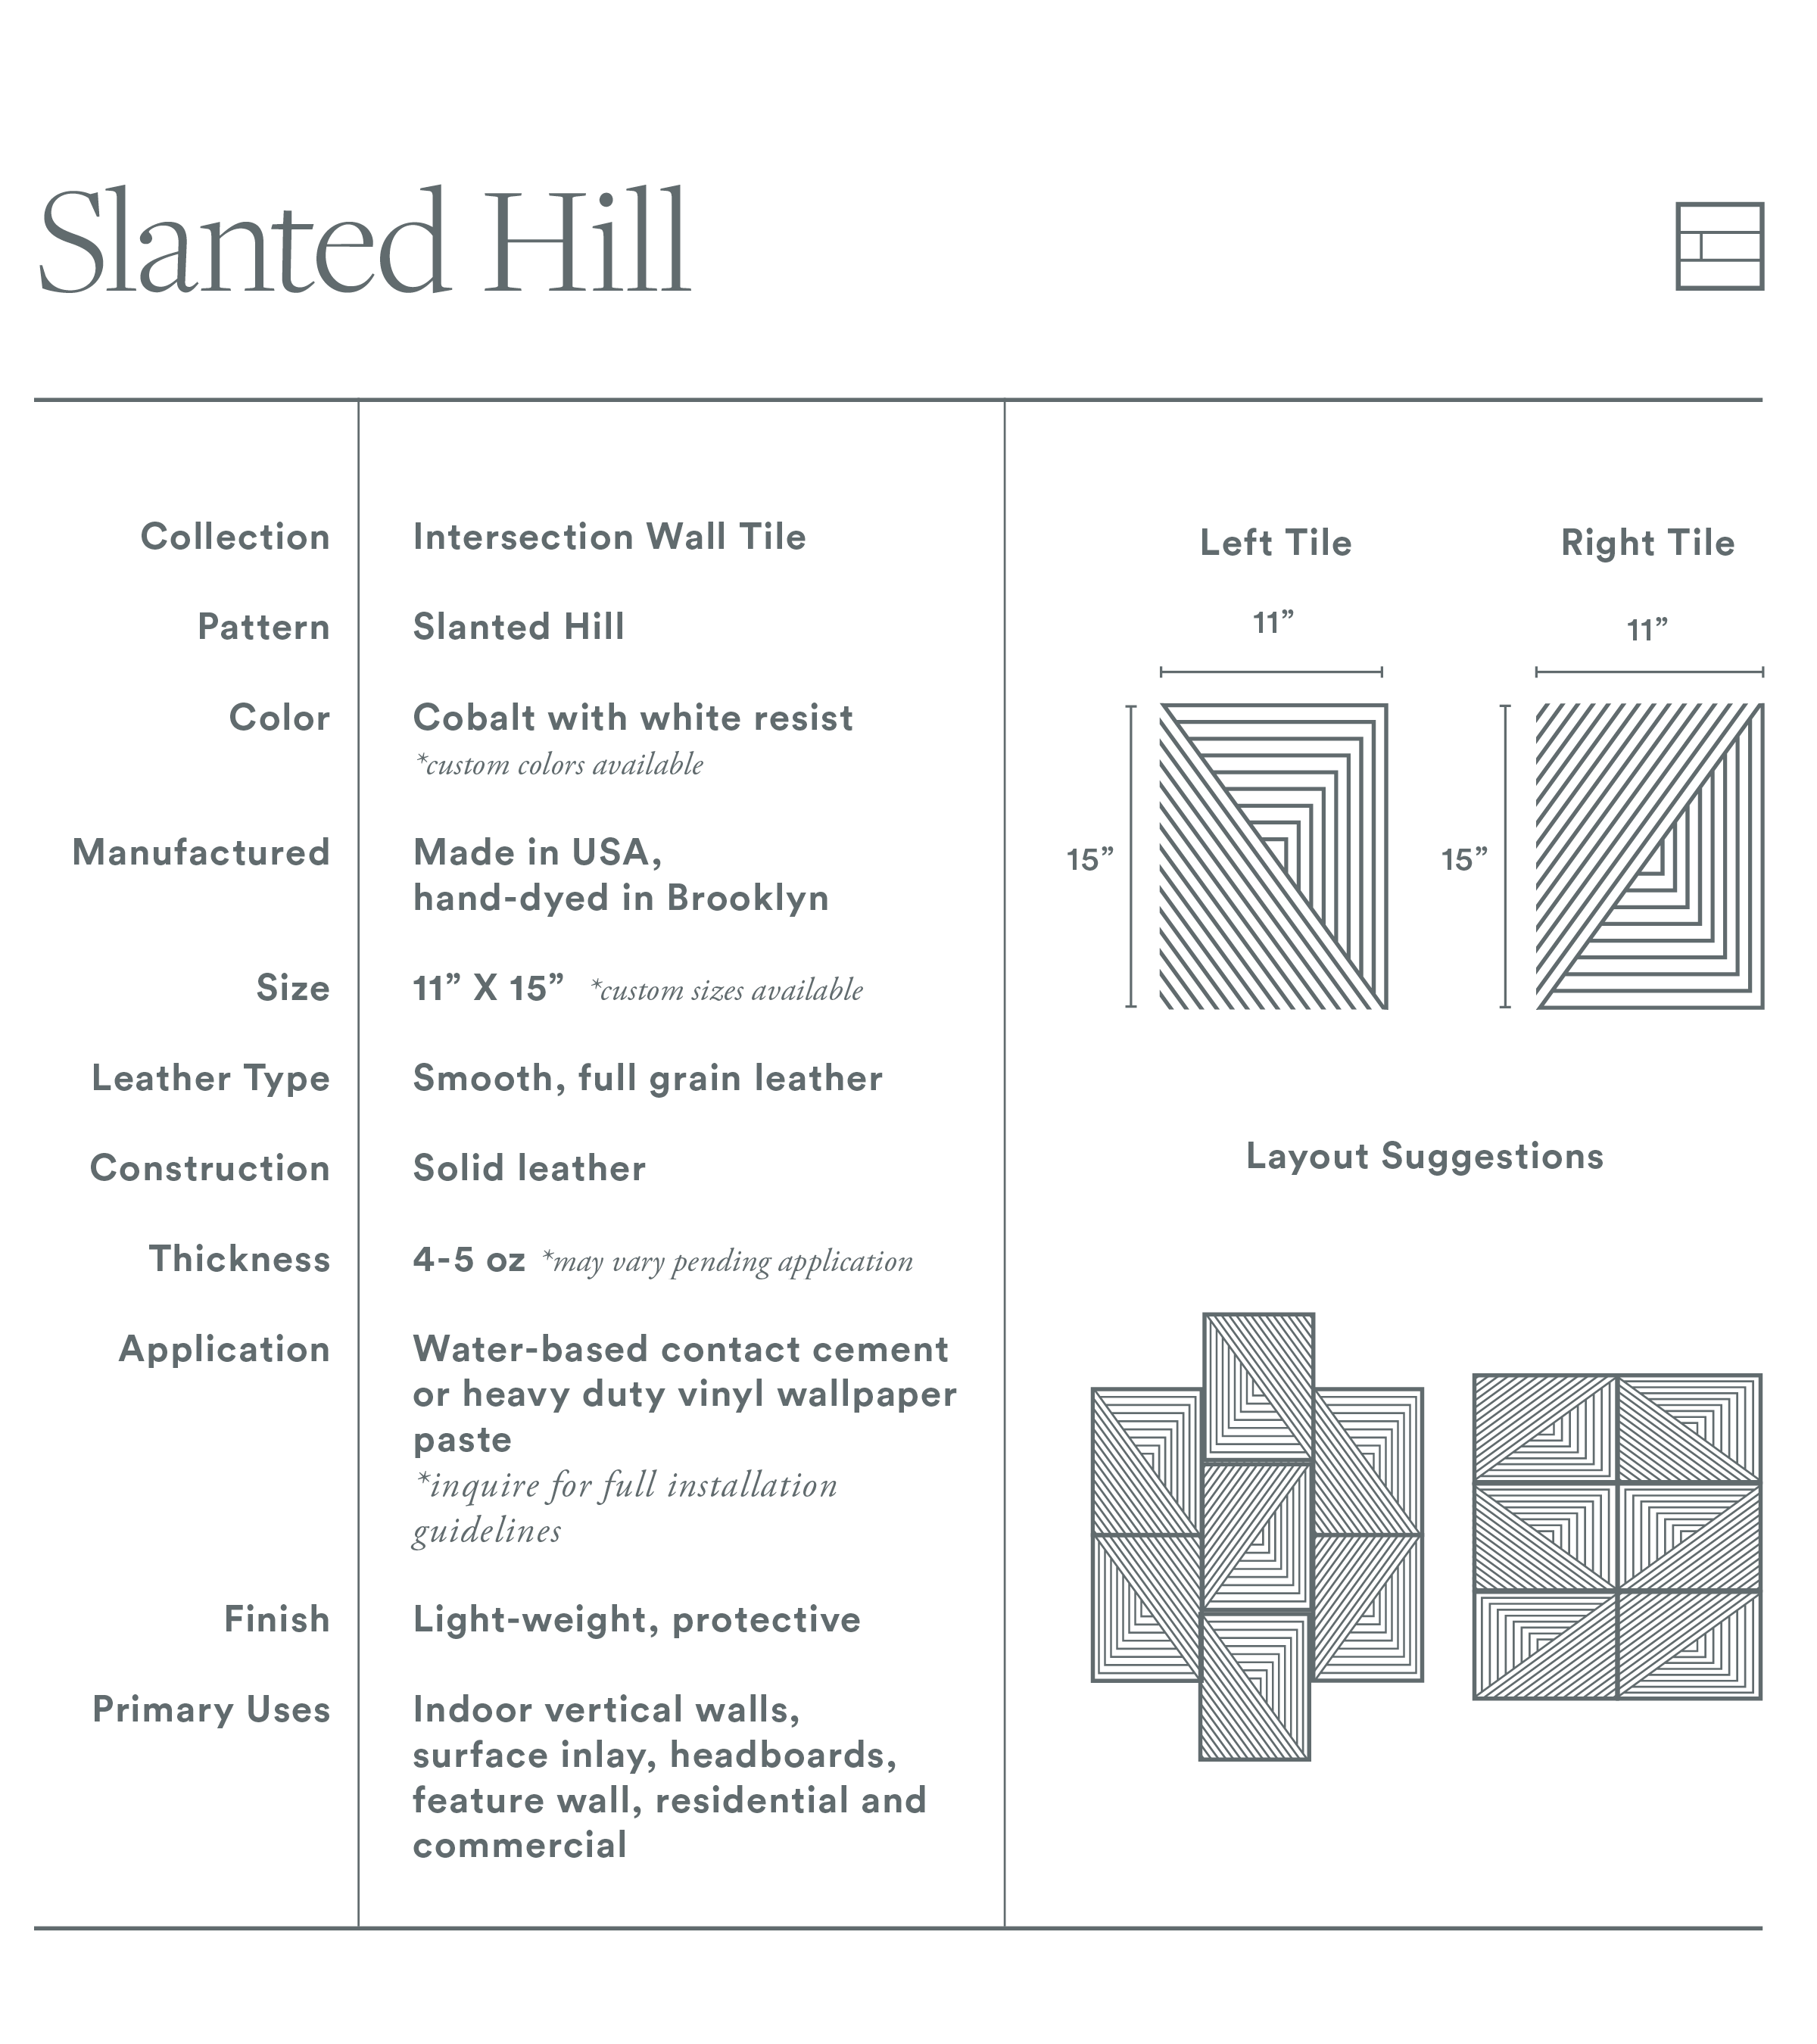 Slanted Hill